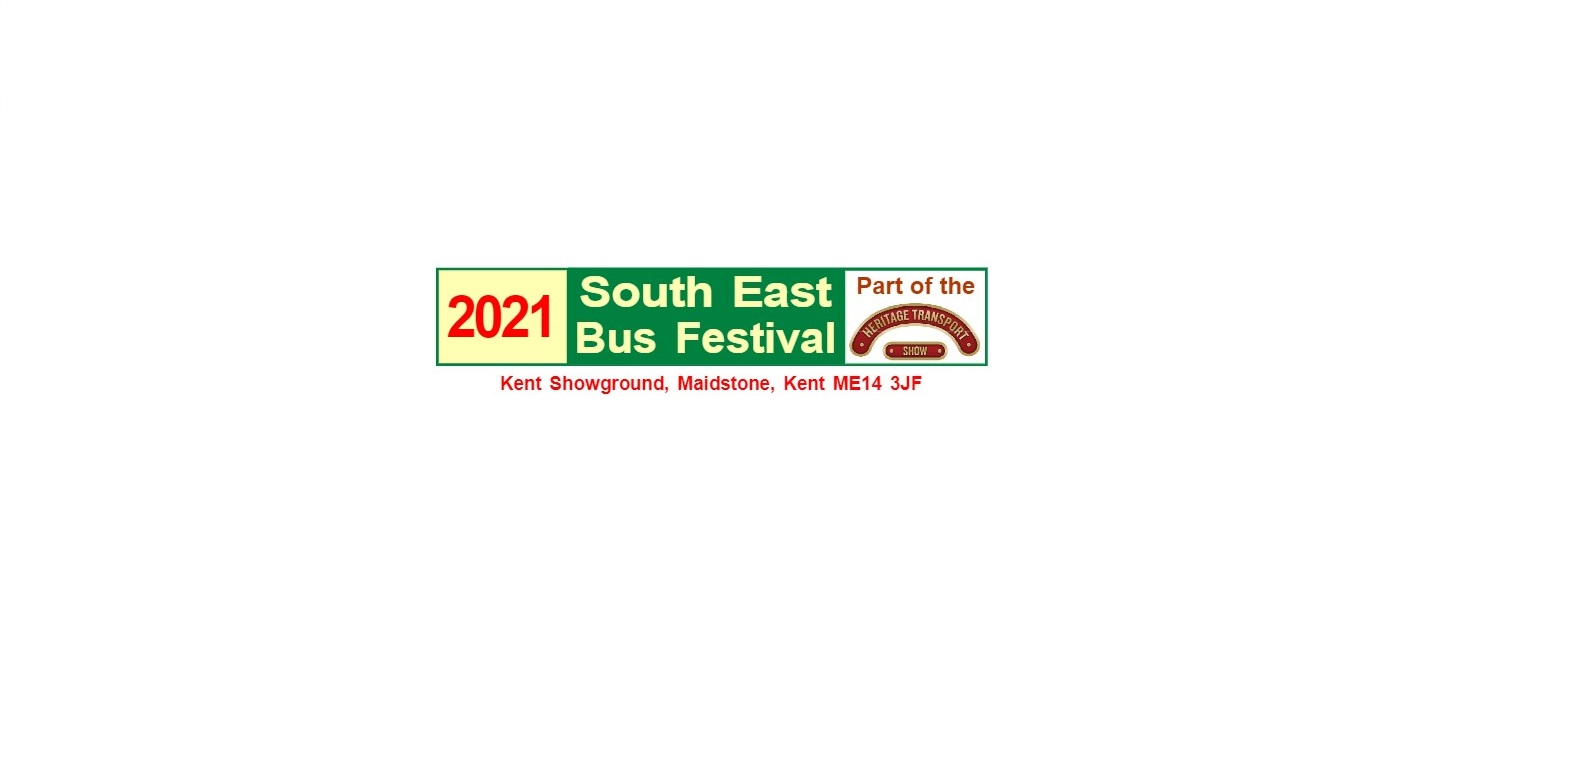 Bus Festival date confirmed